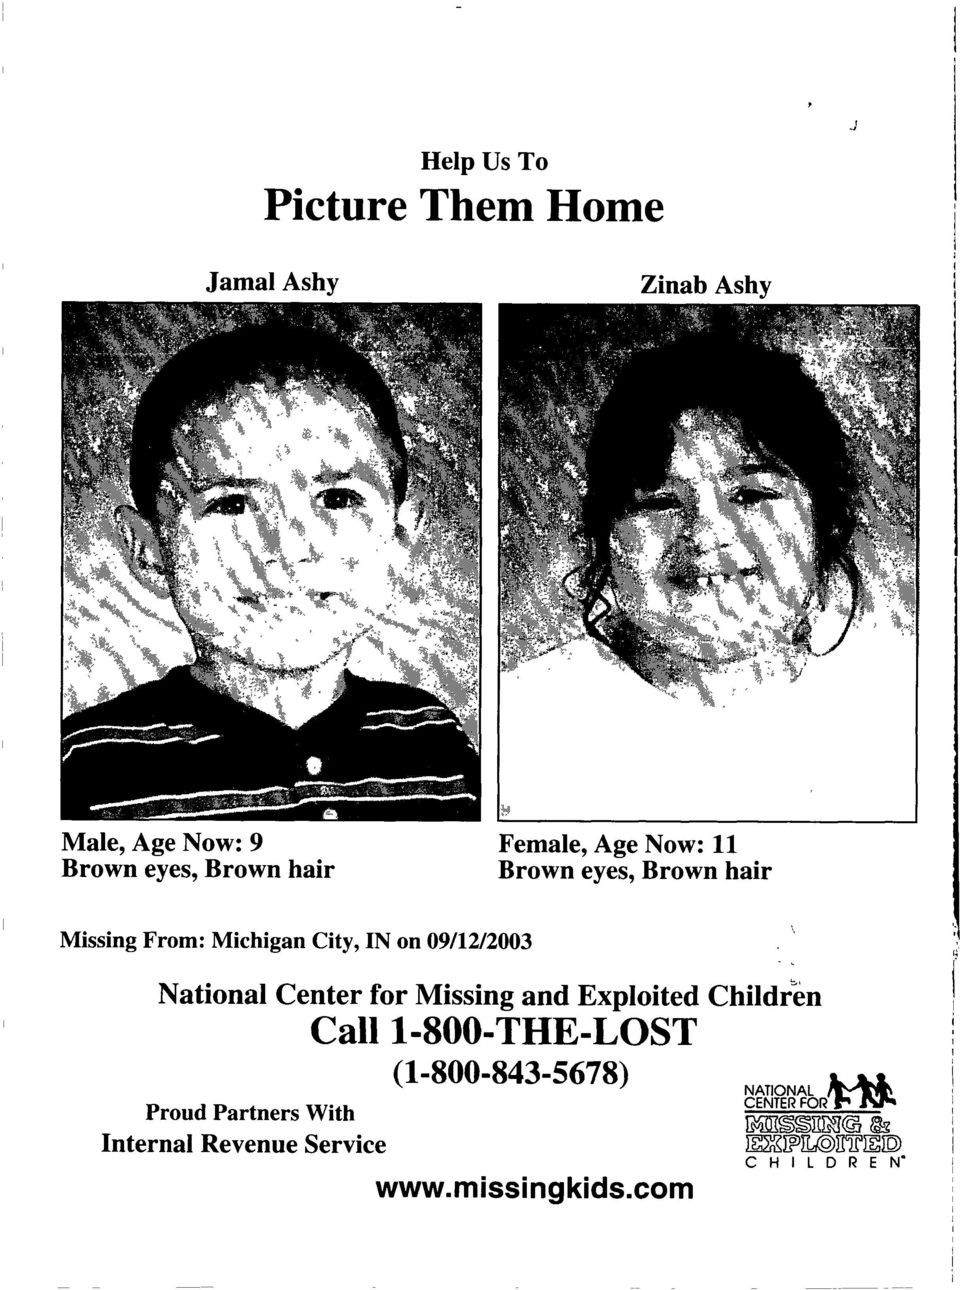 National Center for Missing and Exploited Children Call 1-800-THE-LOST (1-800-843-5678) Proud